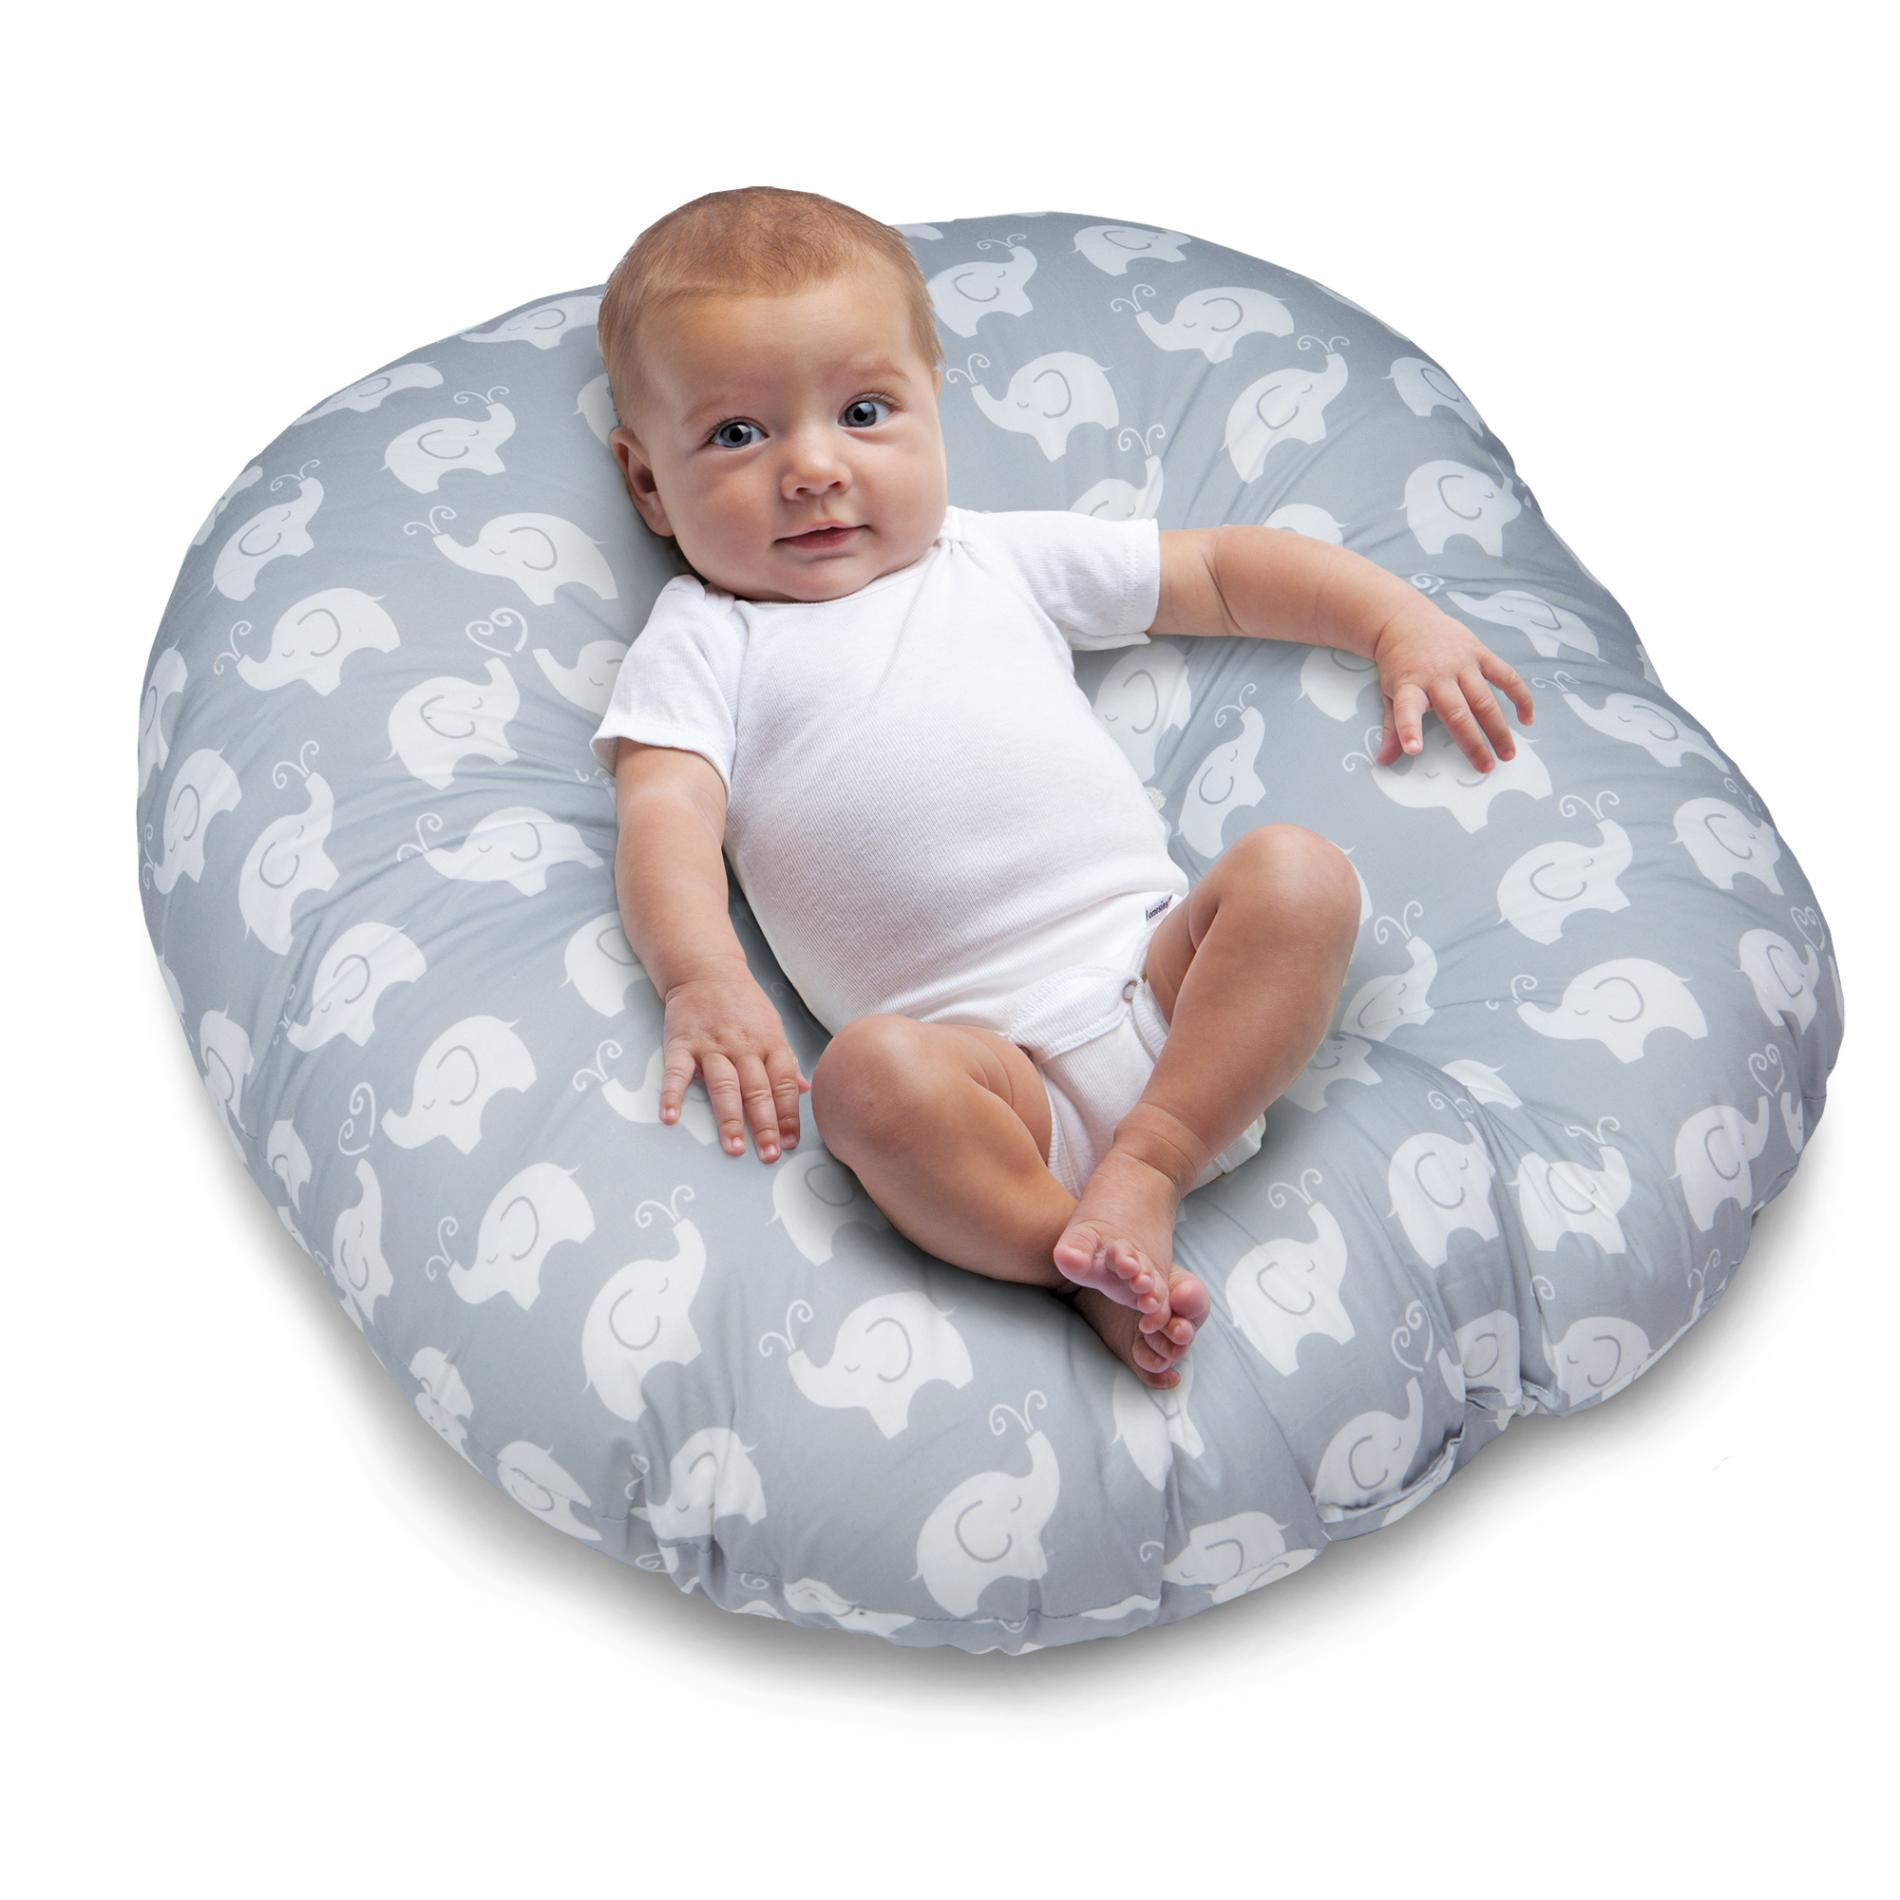 baby boppy chair recall desk with back support newborn lounger pillow elephants feeding alternate image